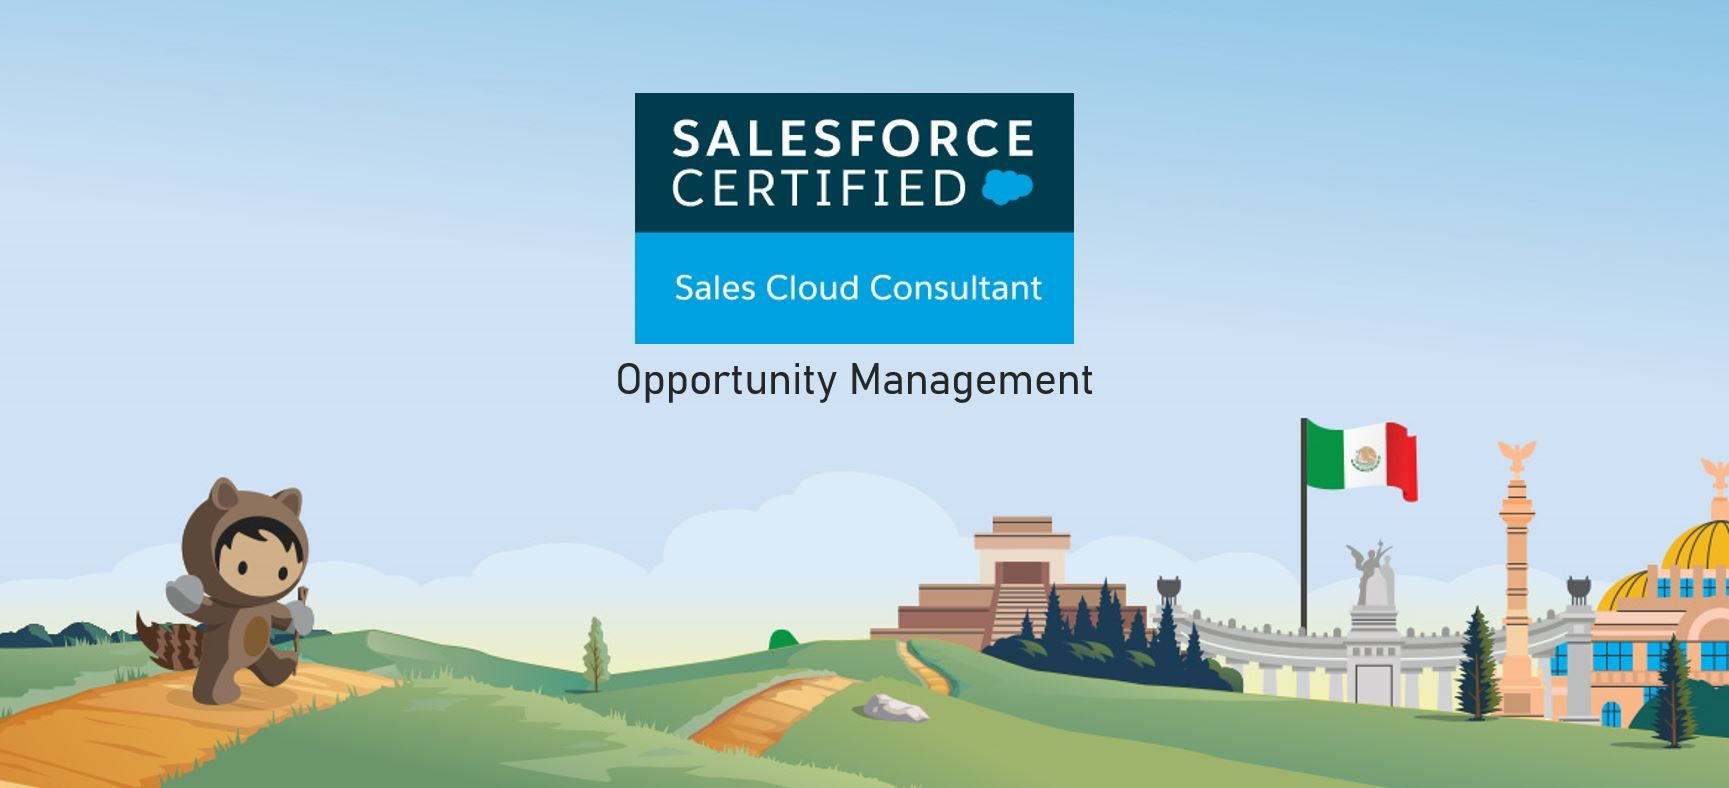 Salesforce Sales Cloud Consultant Exam Preparation: Opportunity Management